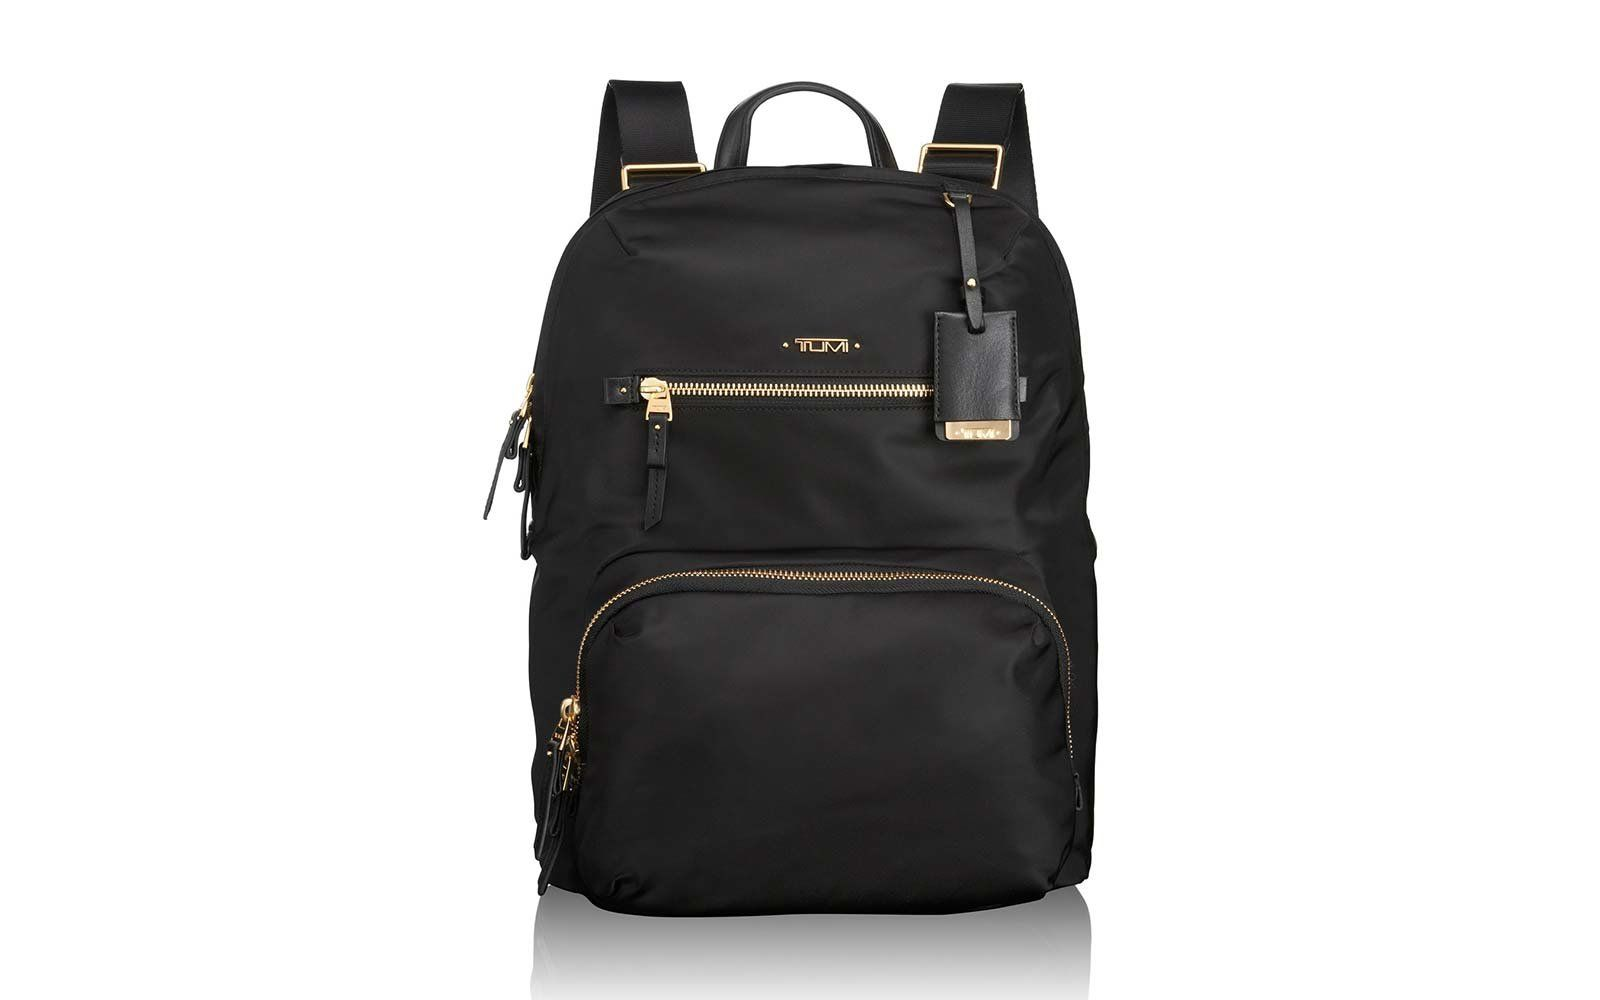 Tumi Voyageur Halle Backpack The Best Totes Briefcases And Backpacks For Professionals On Go